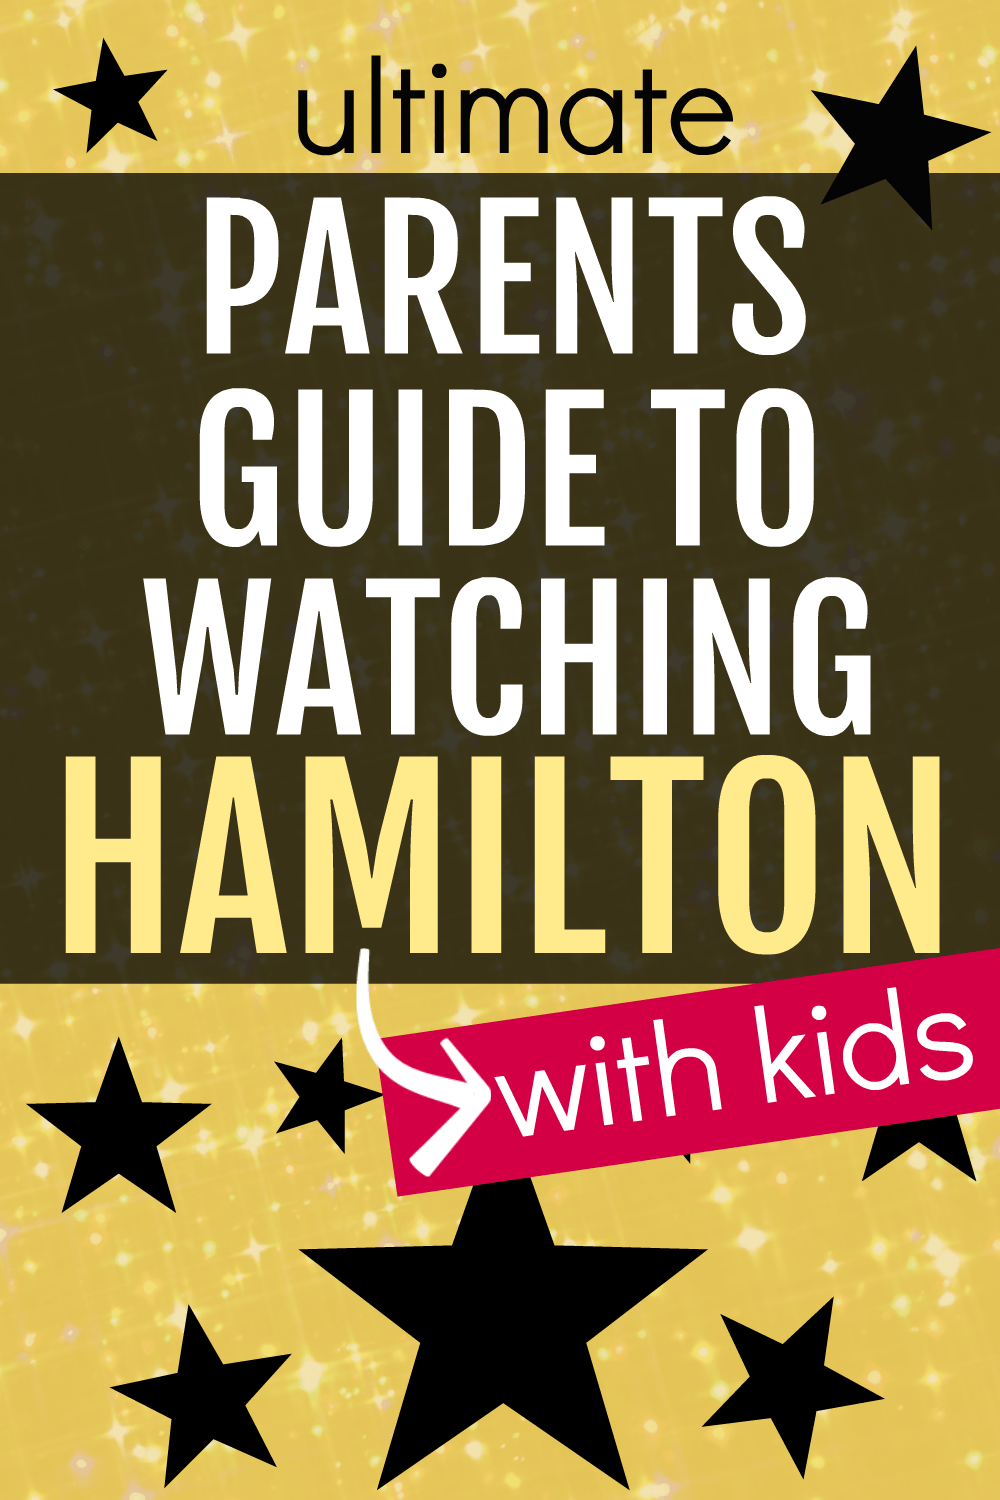 Parents Guide to Watching Hamilton with Kids text over a yellow background with black stars